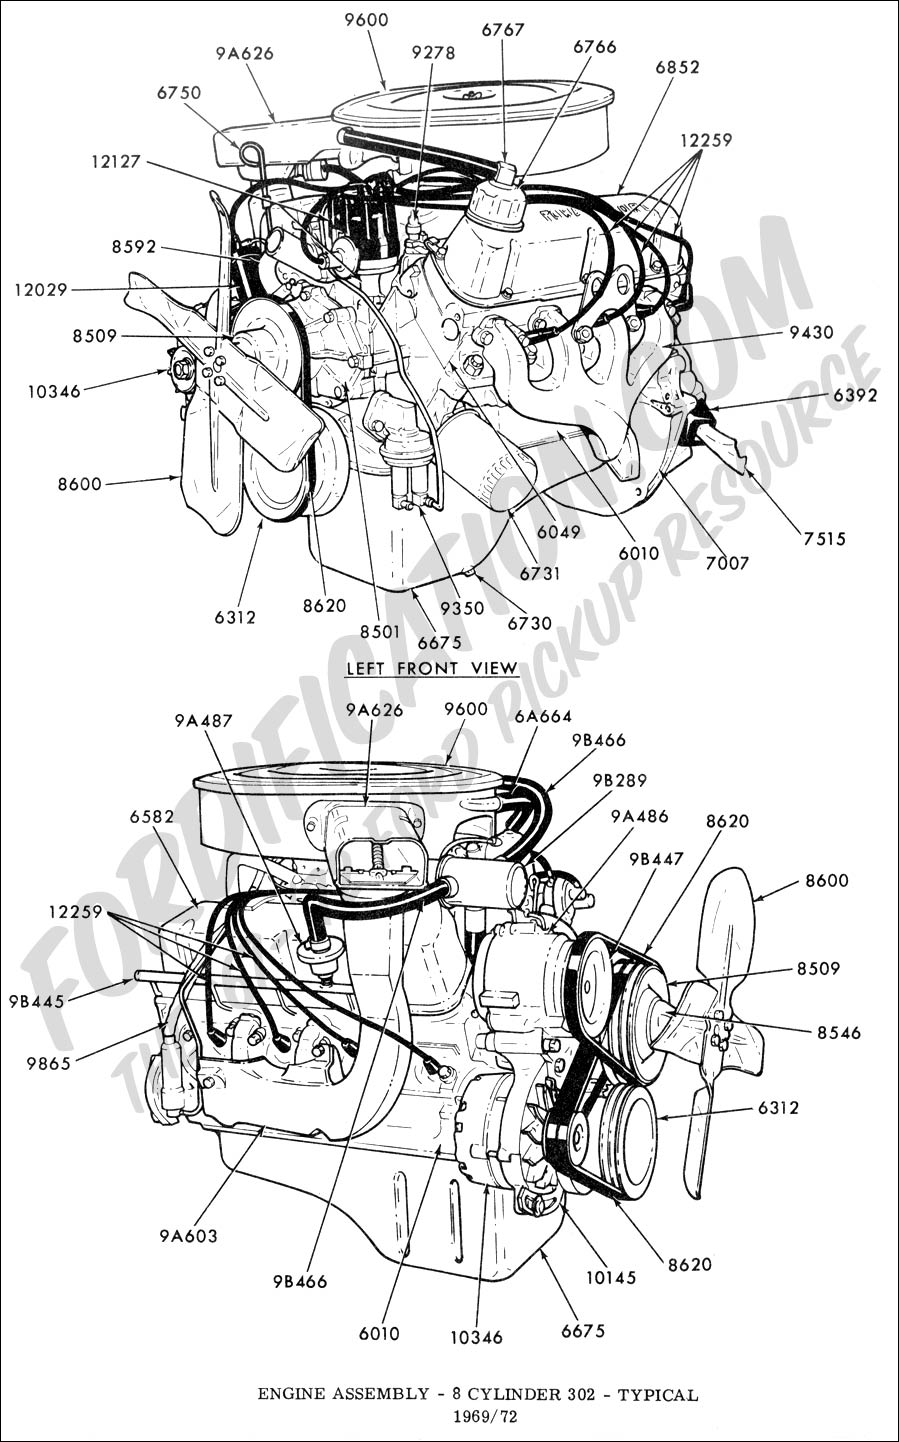 1994 mustang wiring diagram with Schematics E on 87 Dodge Dakota Engine Diagram furthermore 2010 Ford F 150 Wiring Schematic in addition TFI Diagnostic also ShowAssembly furthermore 95 Lt1 Engine Diagram.